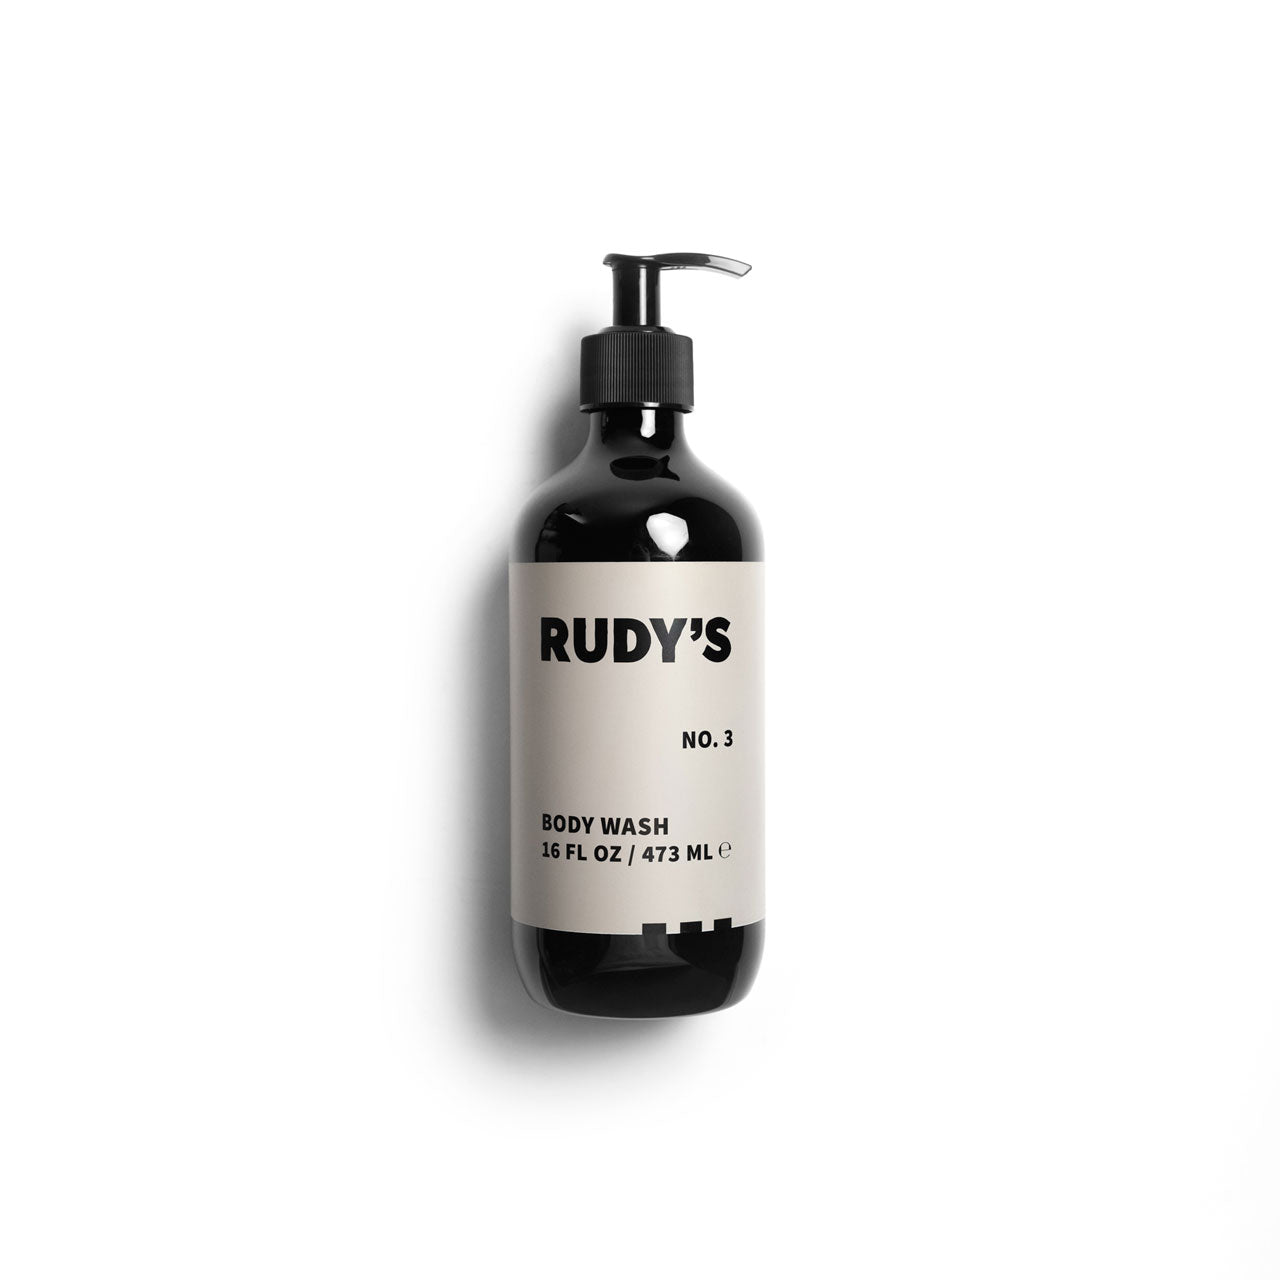 Rudy's No. 3 Body Wash